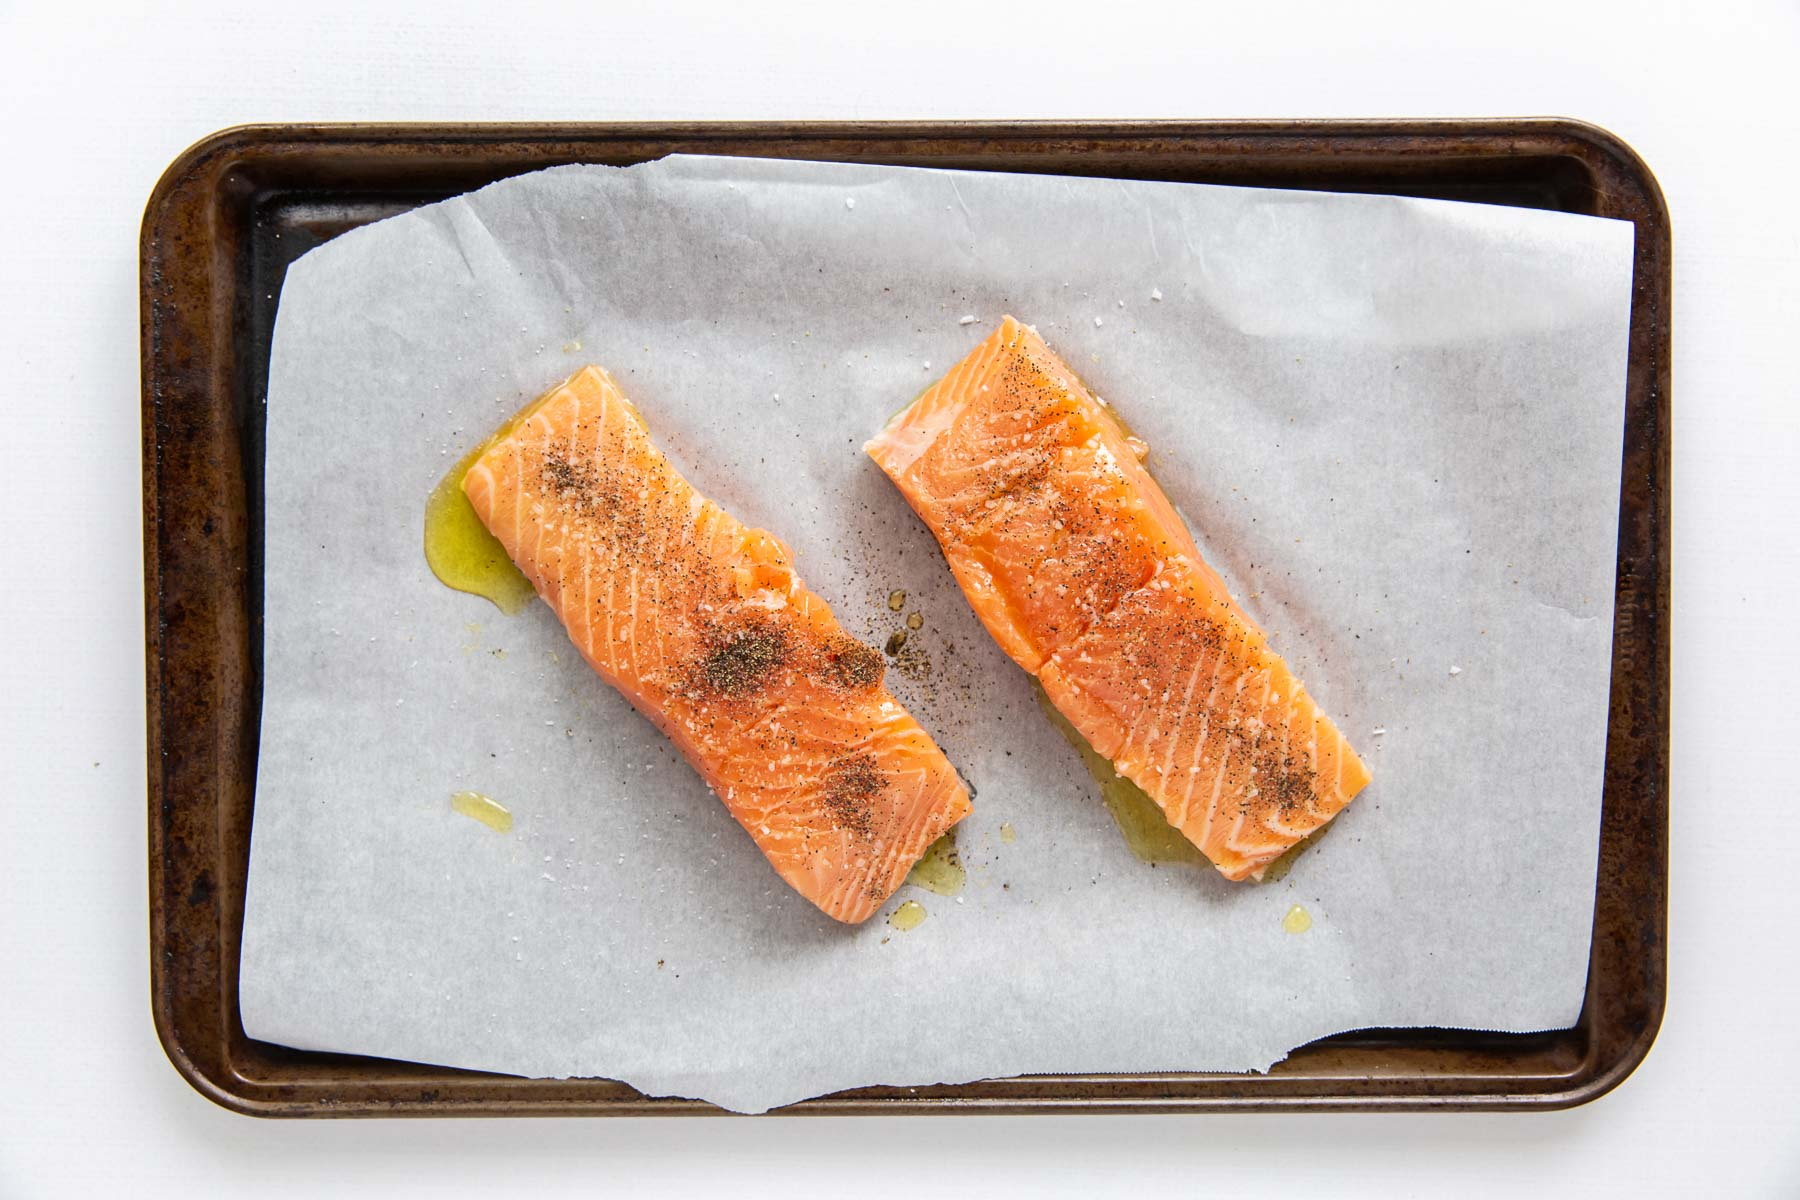 two salmon fillets with olive oil, salt and pepper on a baking sheet